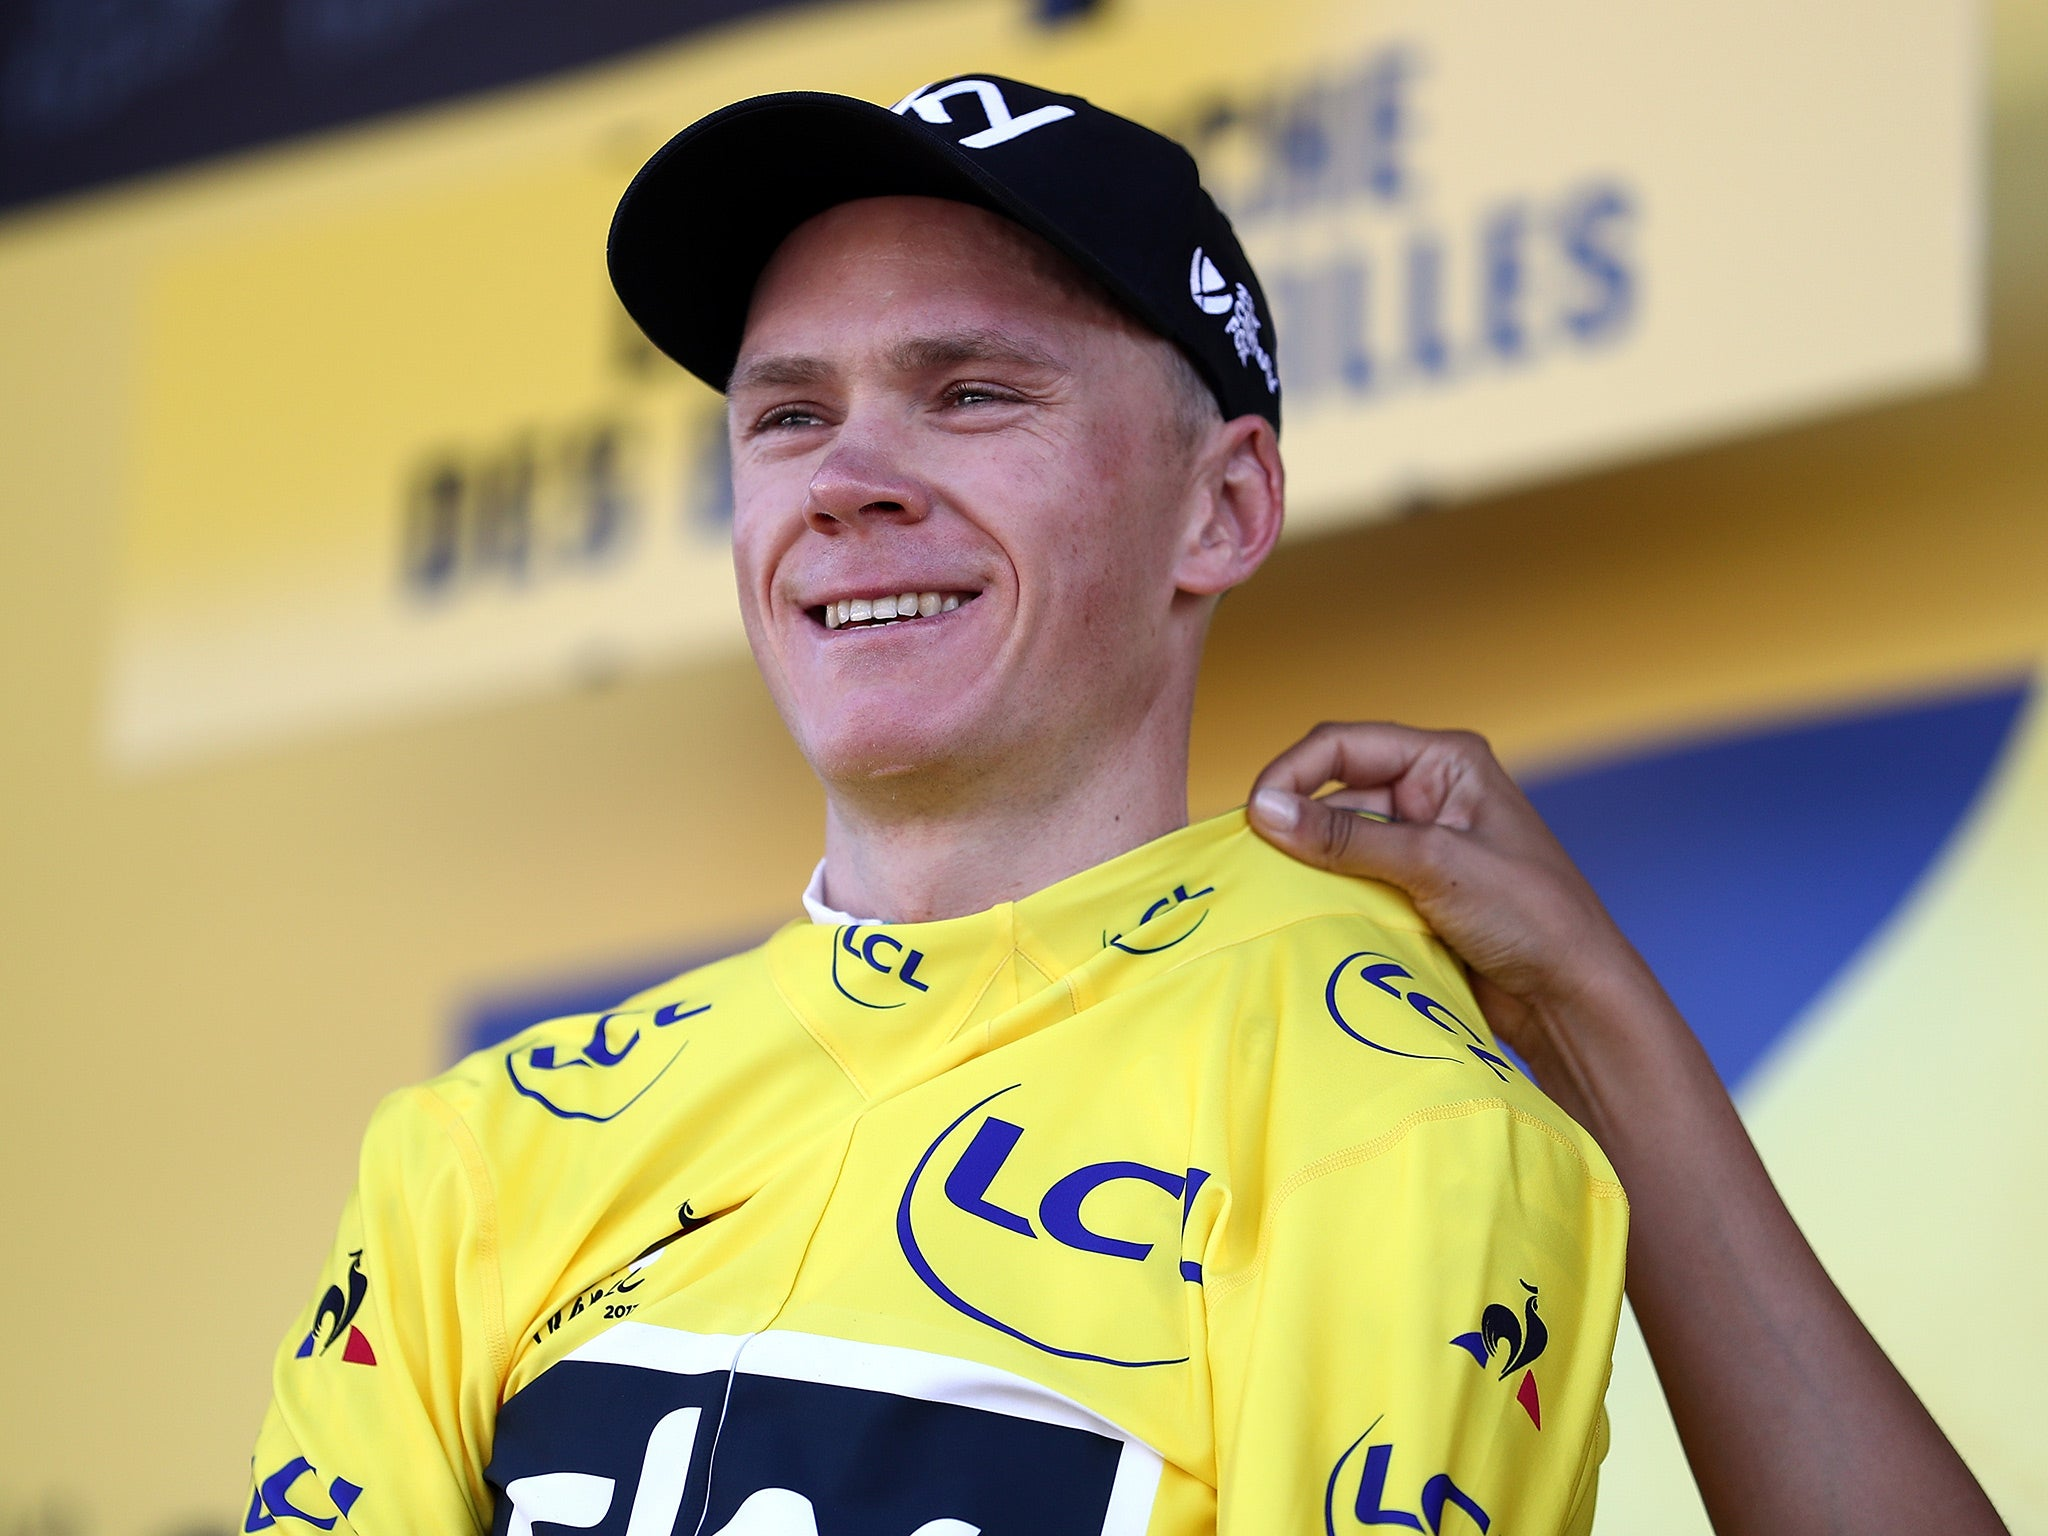 chris froome - photo #13